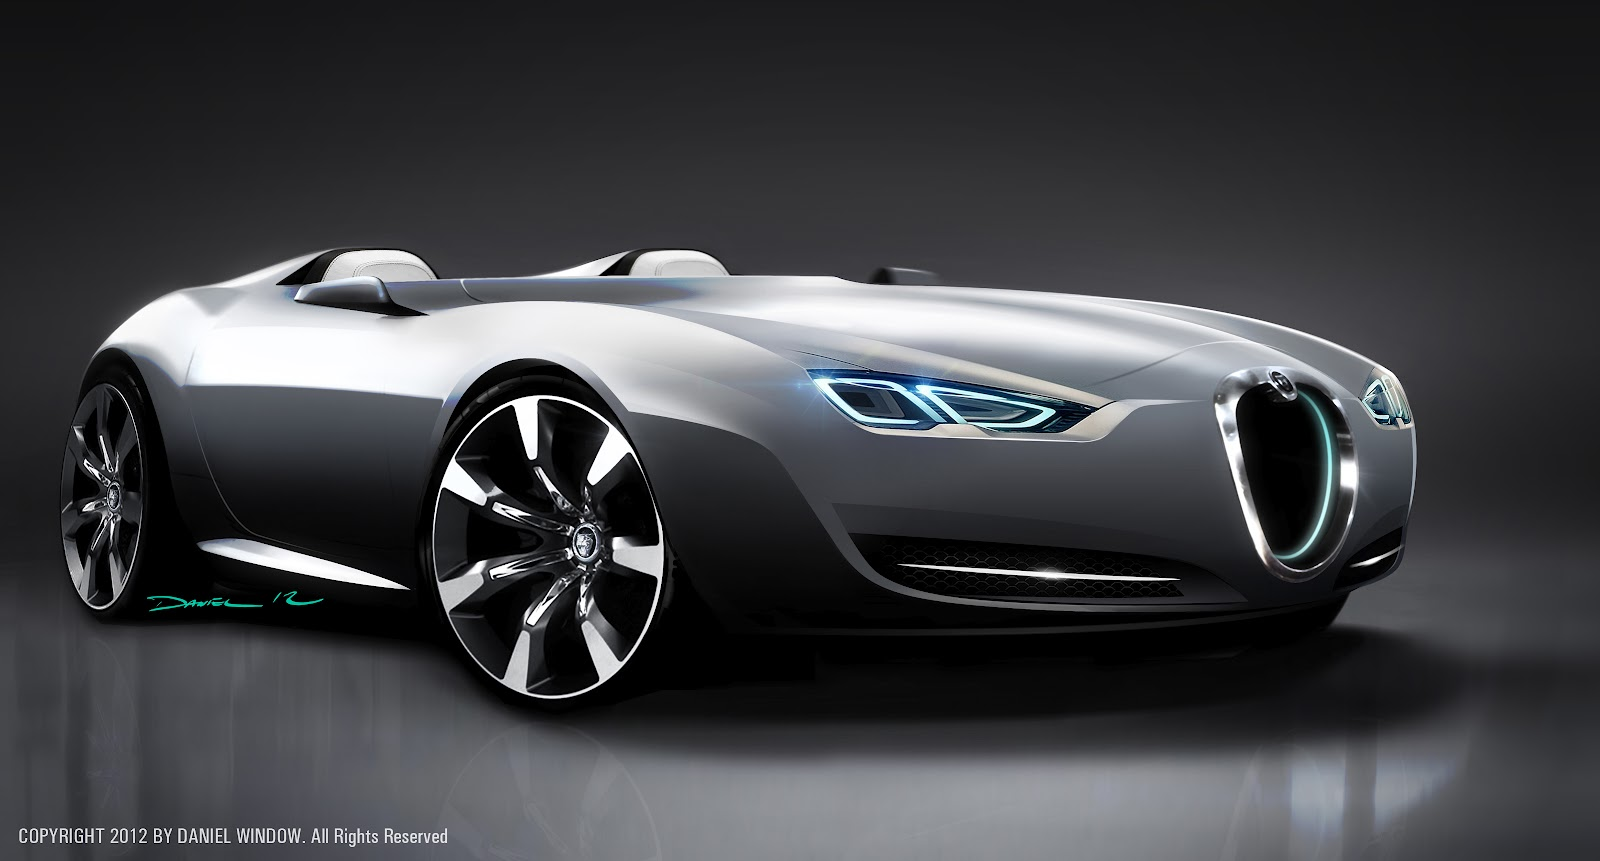 dan window vehicle design  jaguar roadster concept